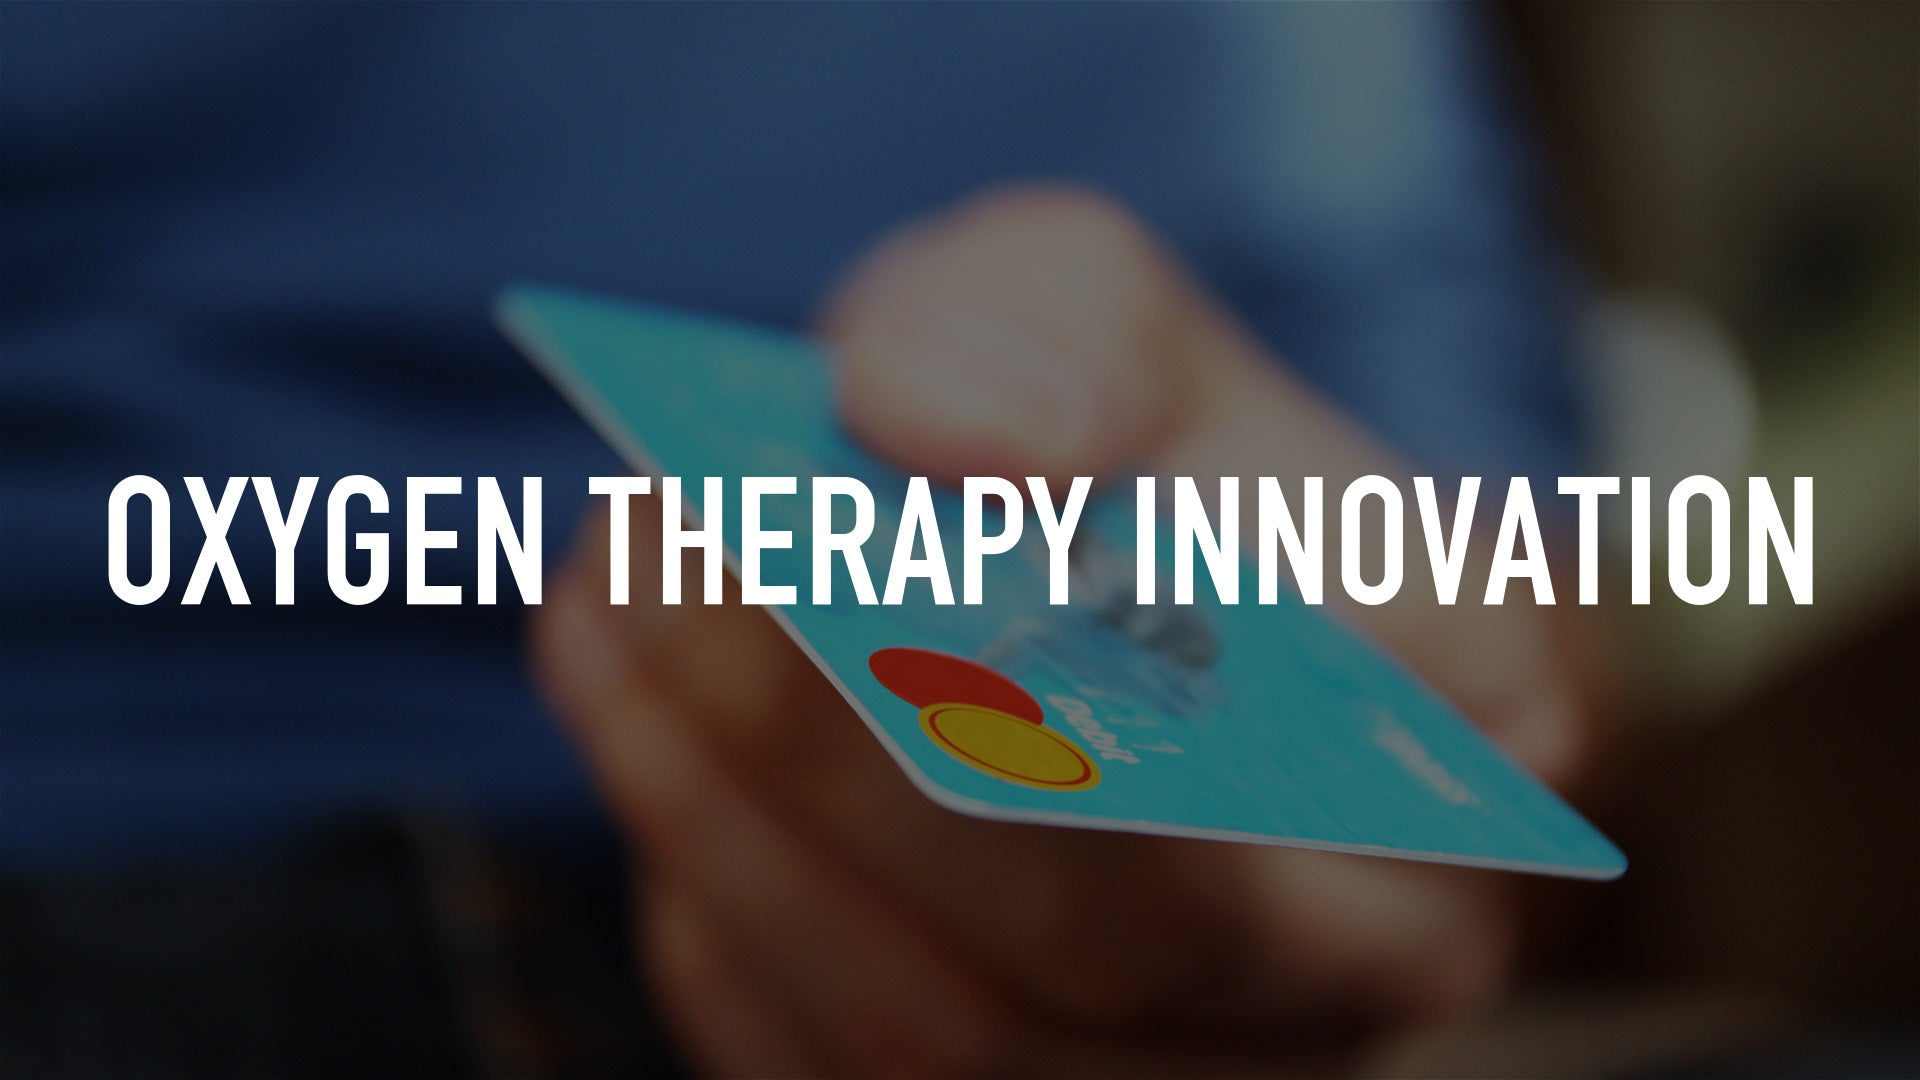 Oxygen Therapy Innovation